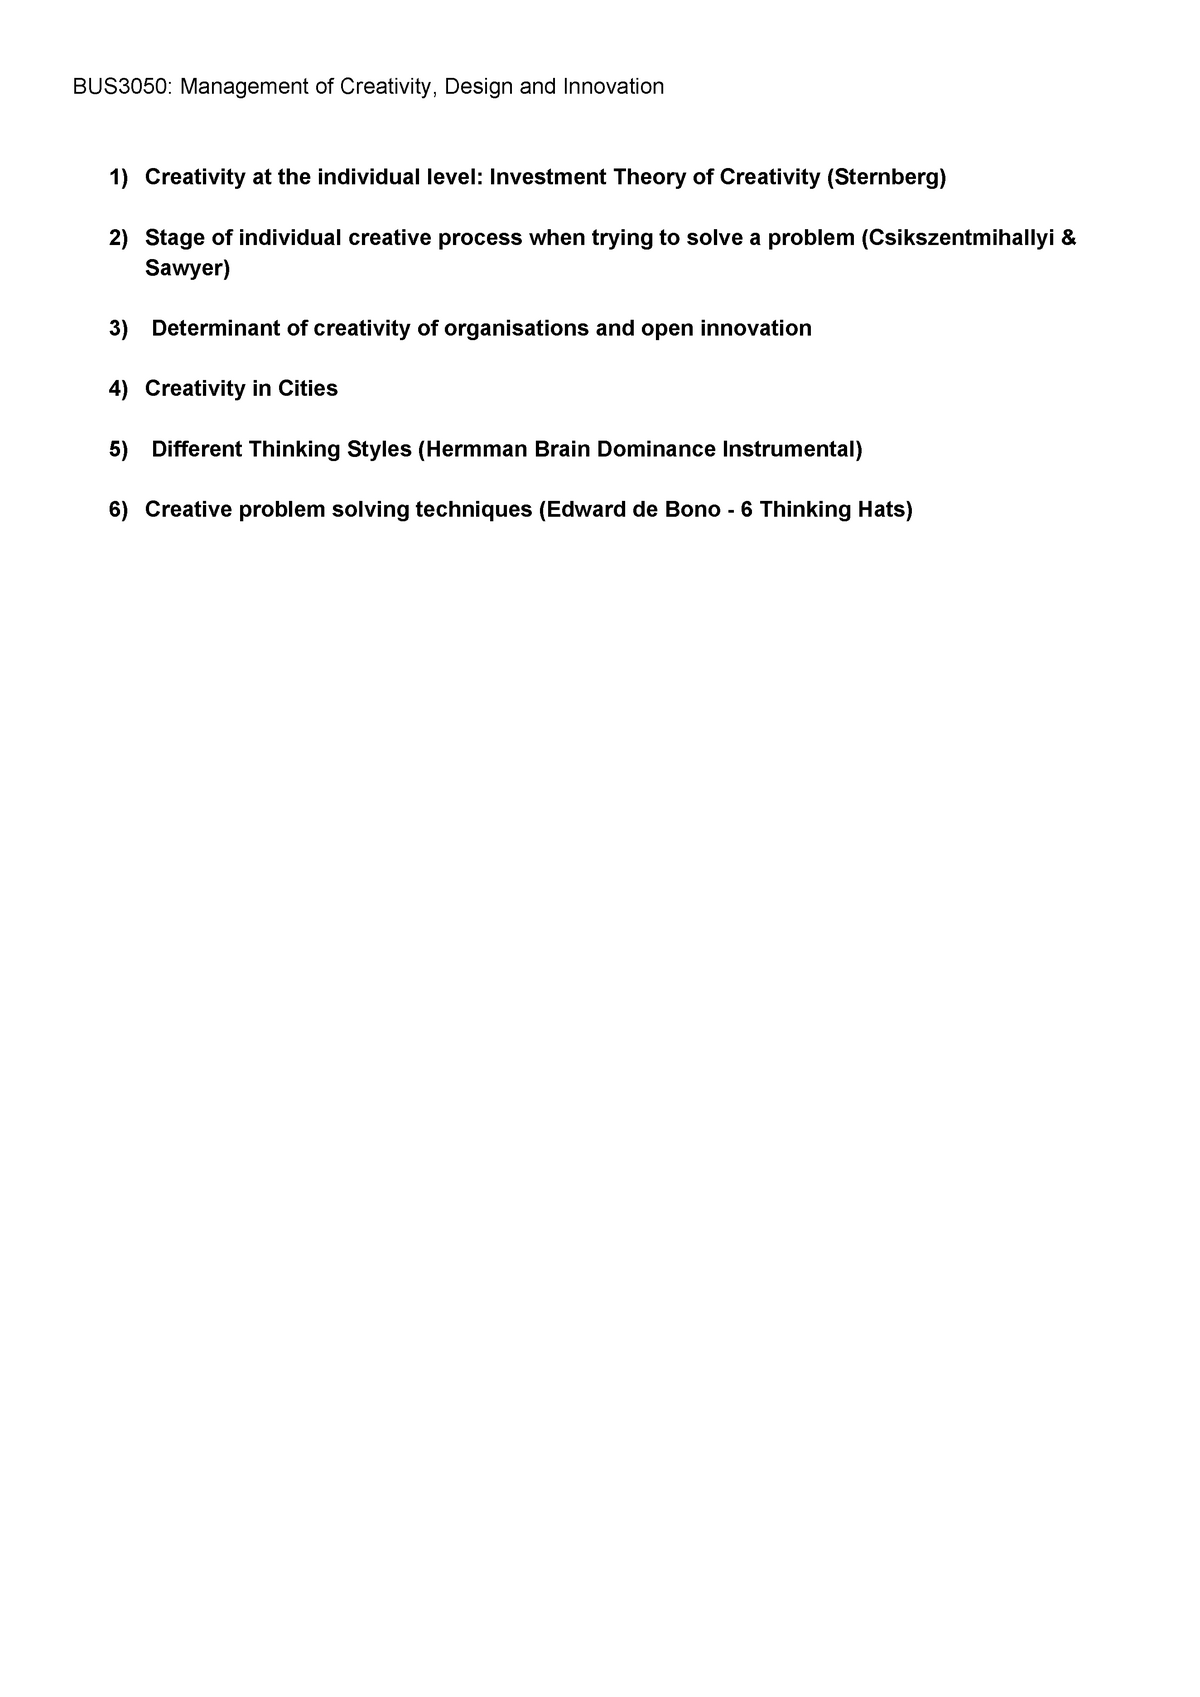 Innovation Revision - Lecture notes 1-12 - BUS3050